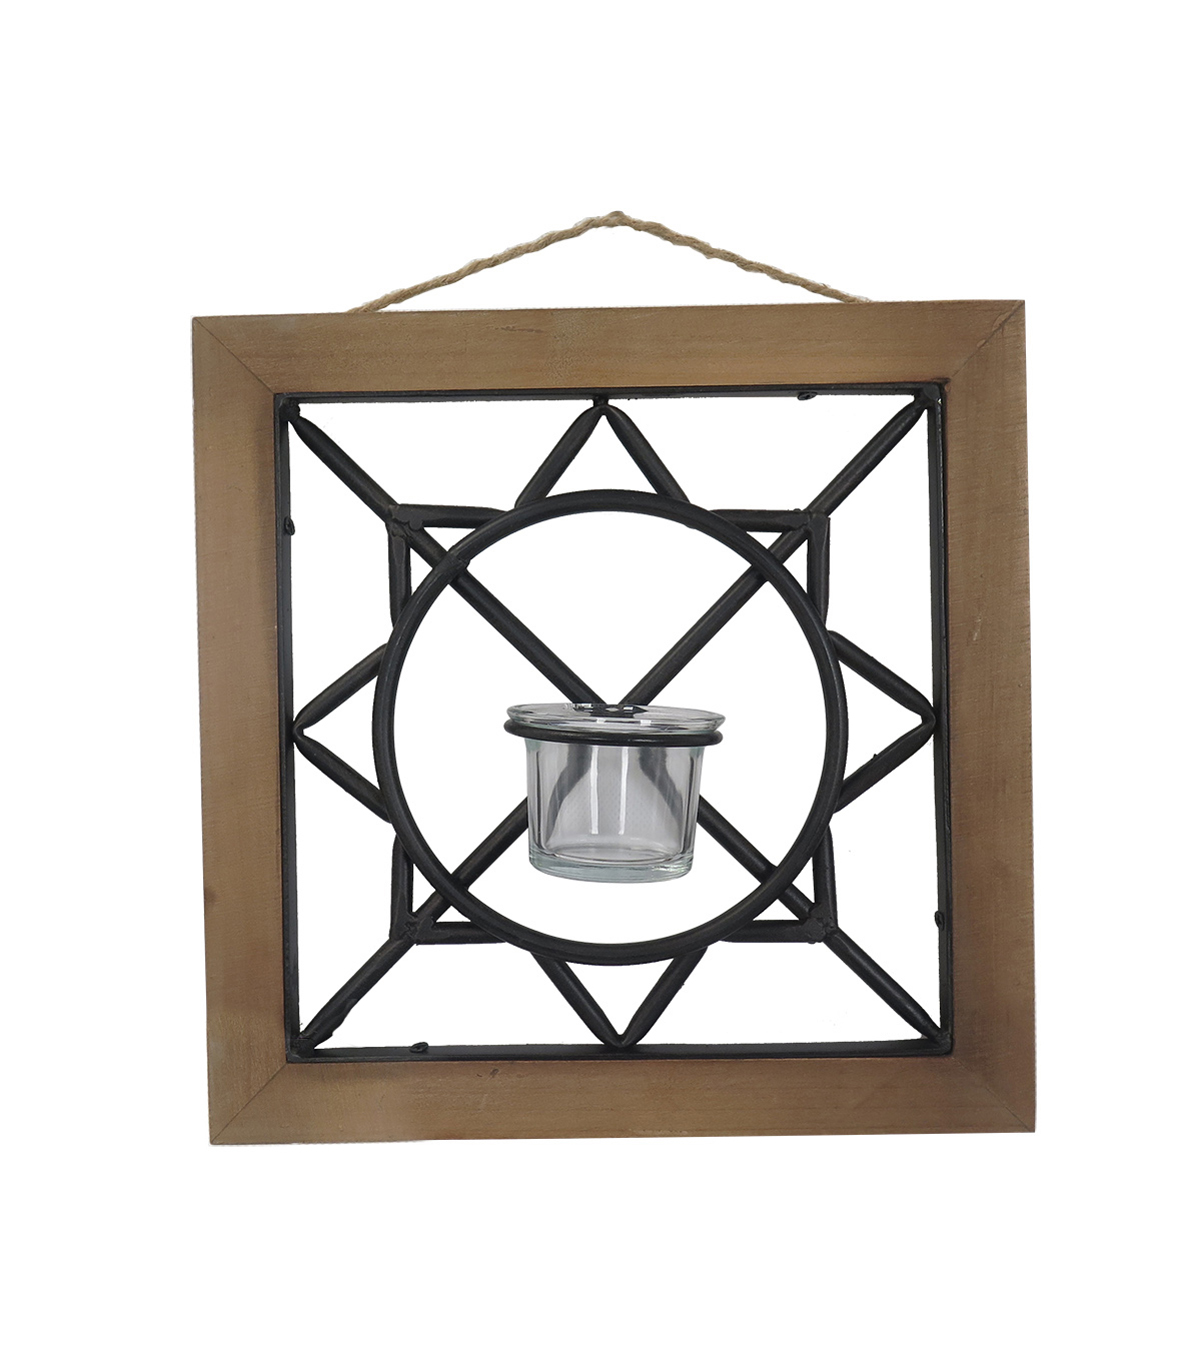 Summer Sol Geometric Wall Candle Holder C